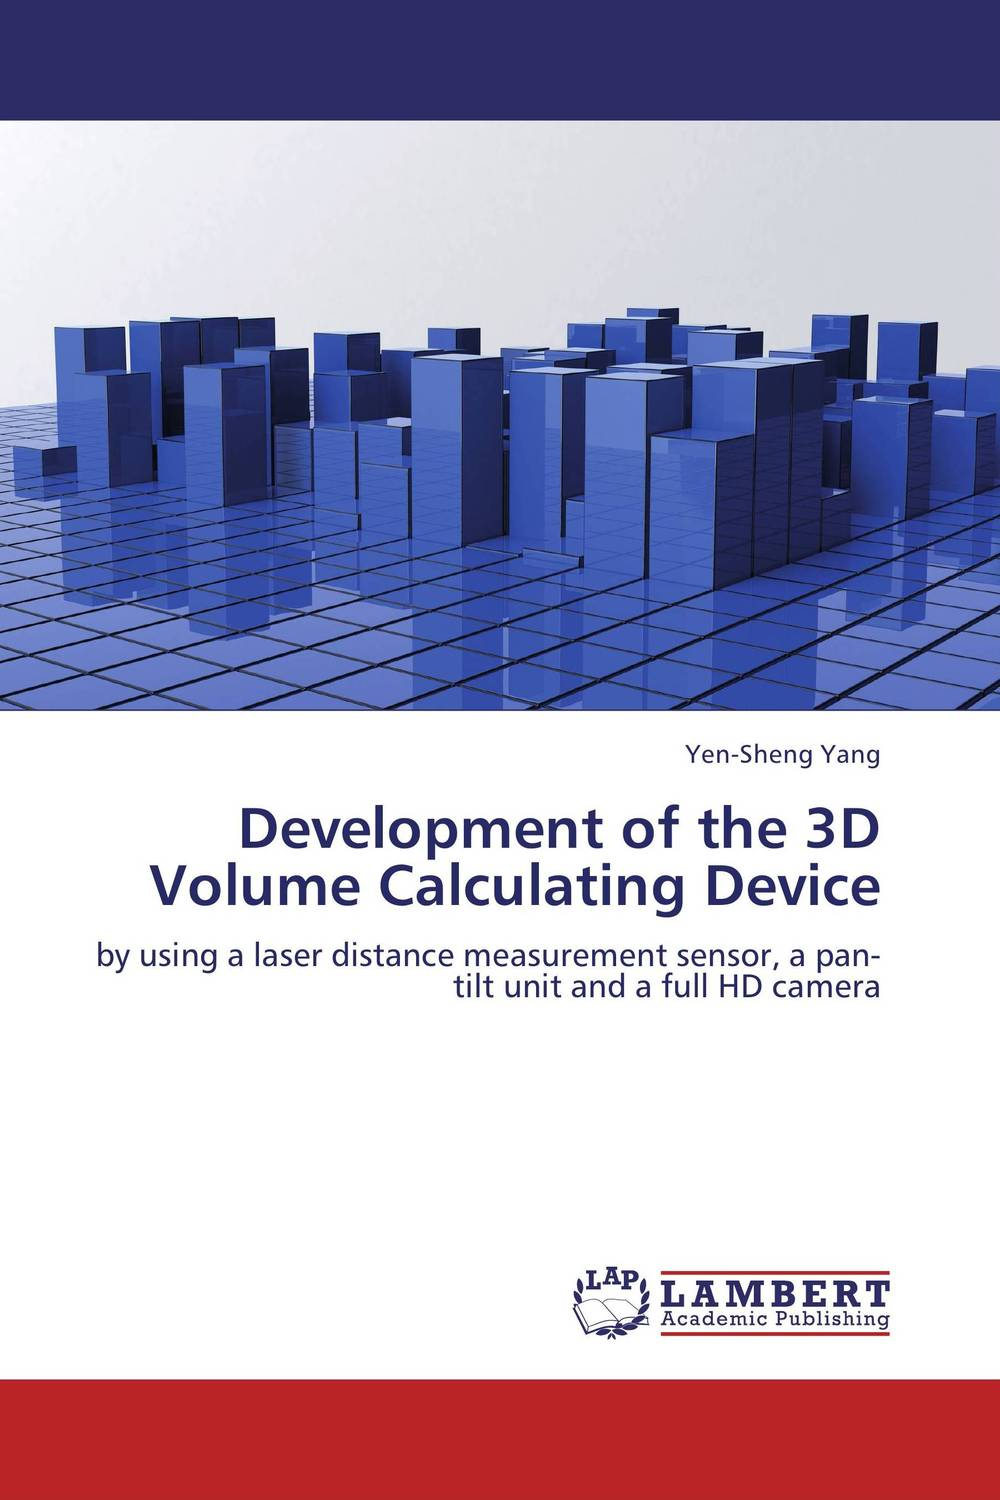 Development of the 3D Volume Calculating Device the heir